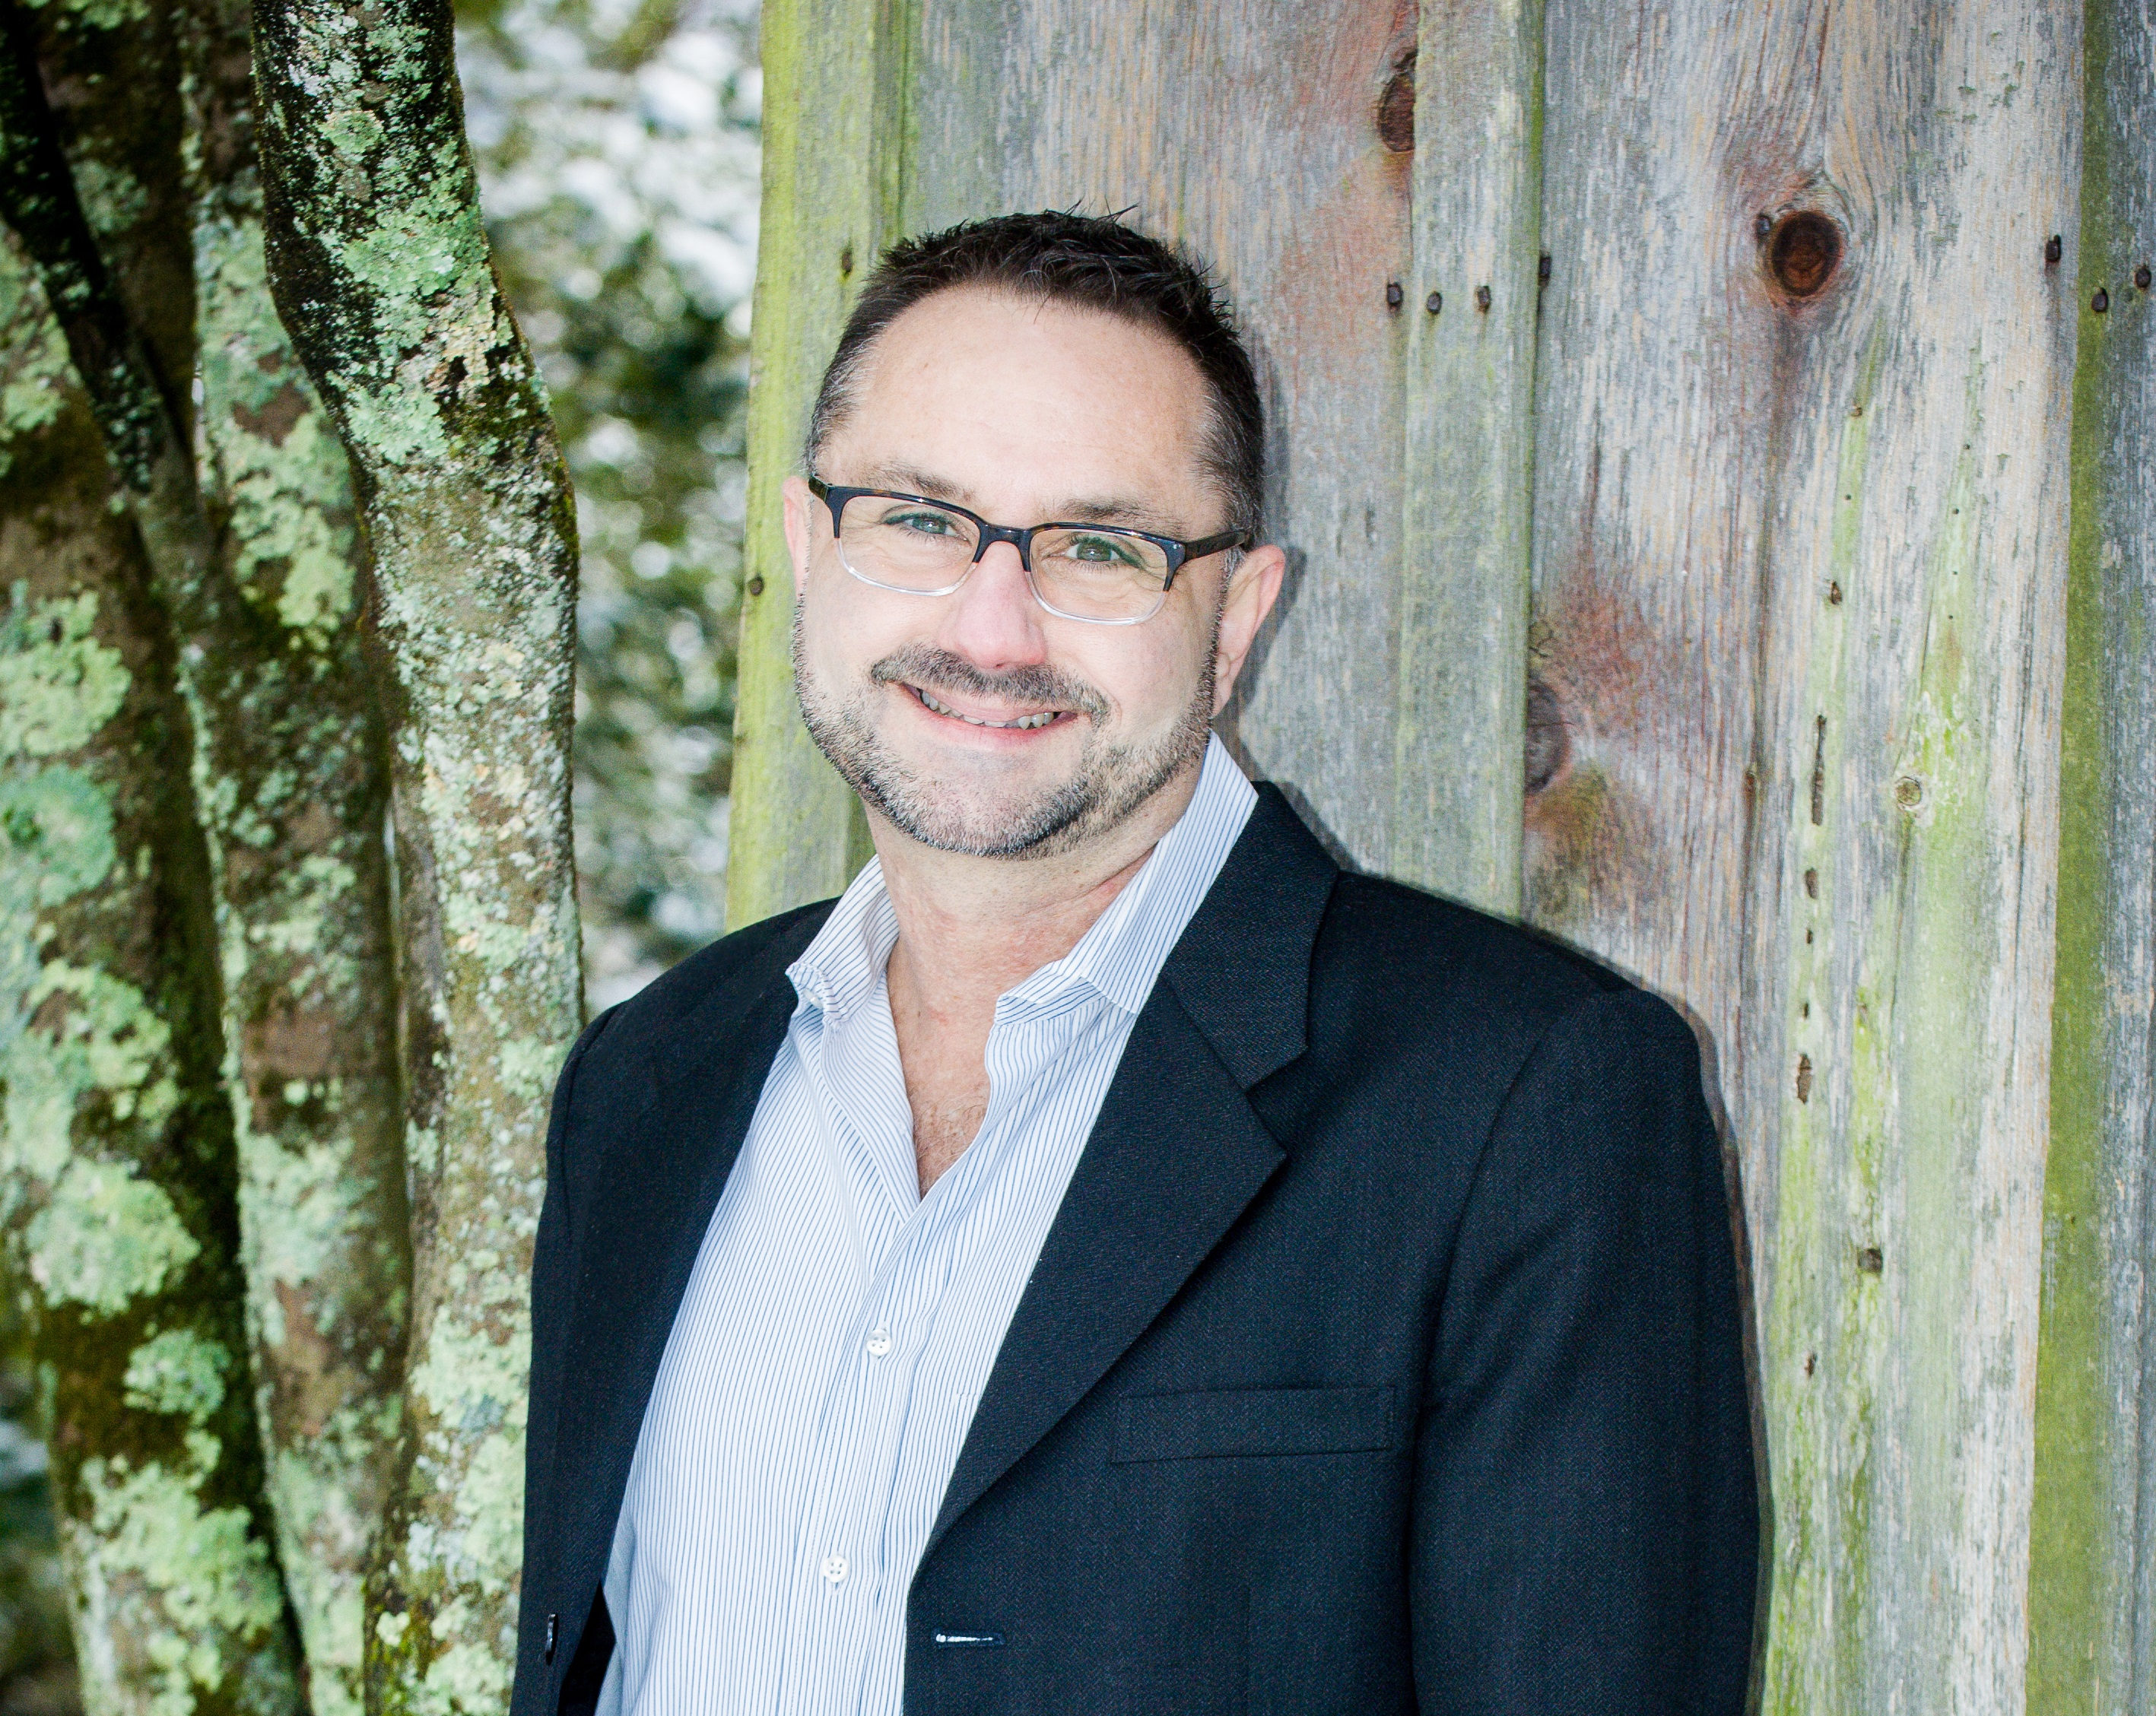 Q&A with David Yaskulka from Nature's Logic